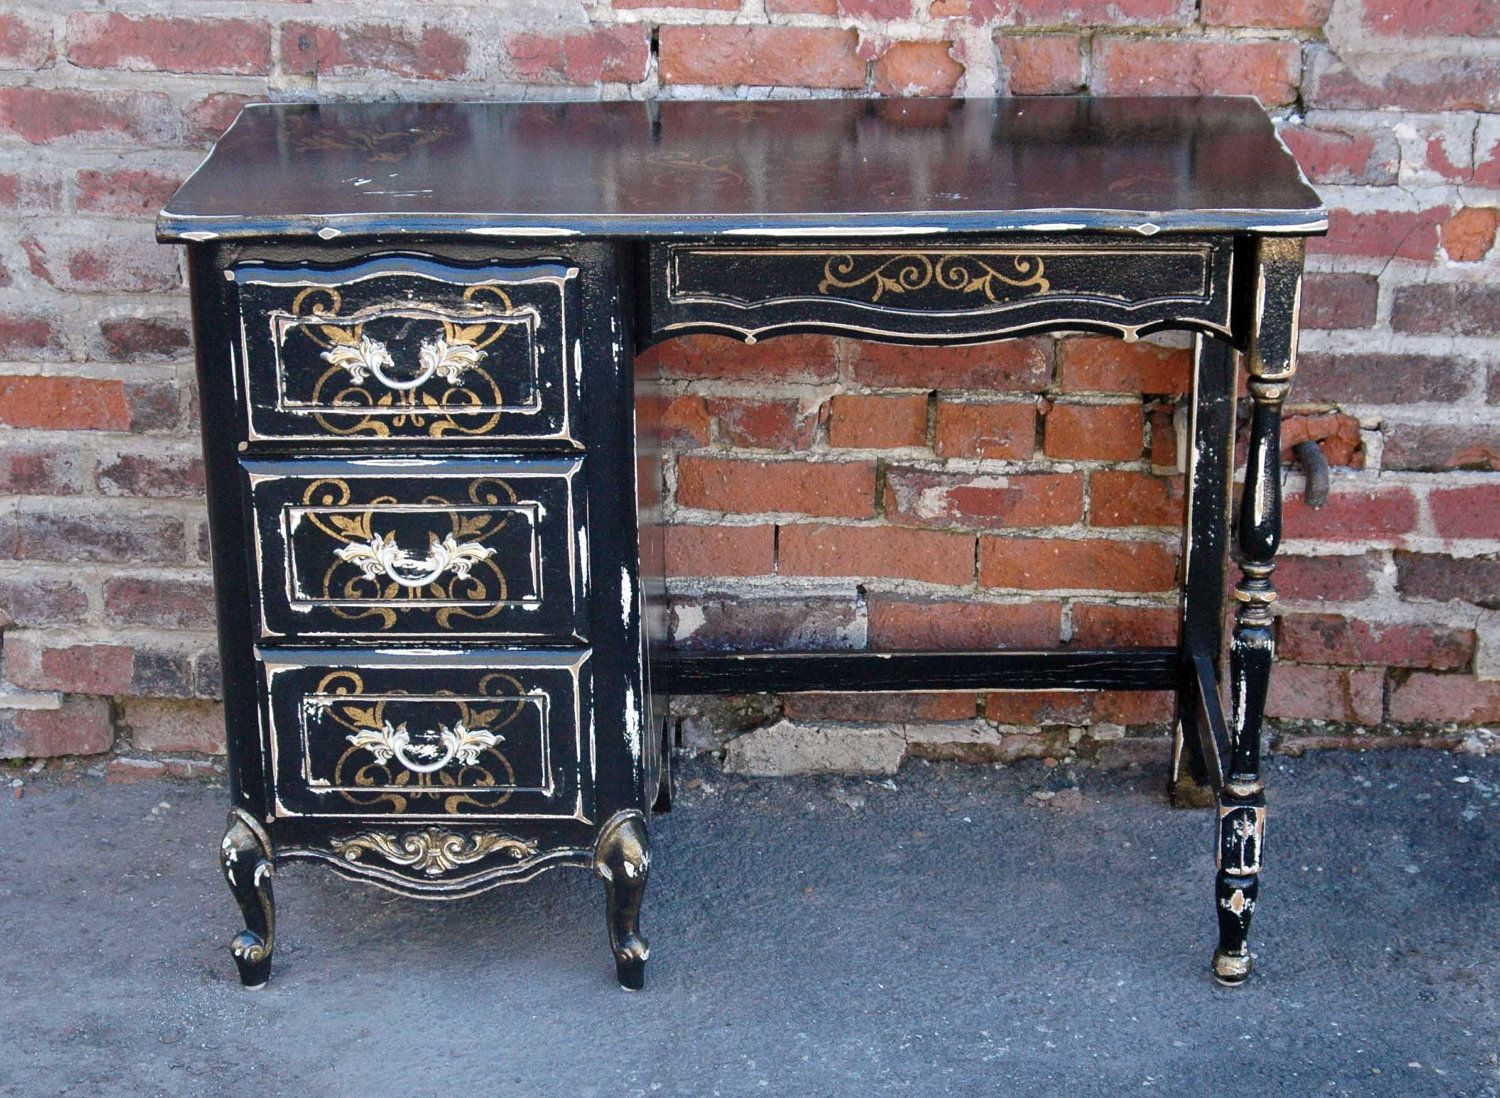 Painting furniture black distressed - Distressed Painted Furniture Antique Writing Desk With Black Finish And Gold Stencil 795 00